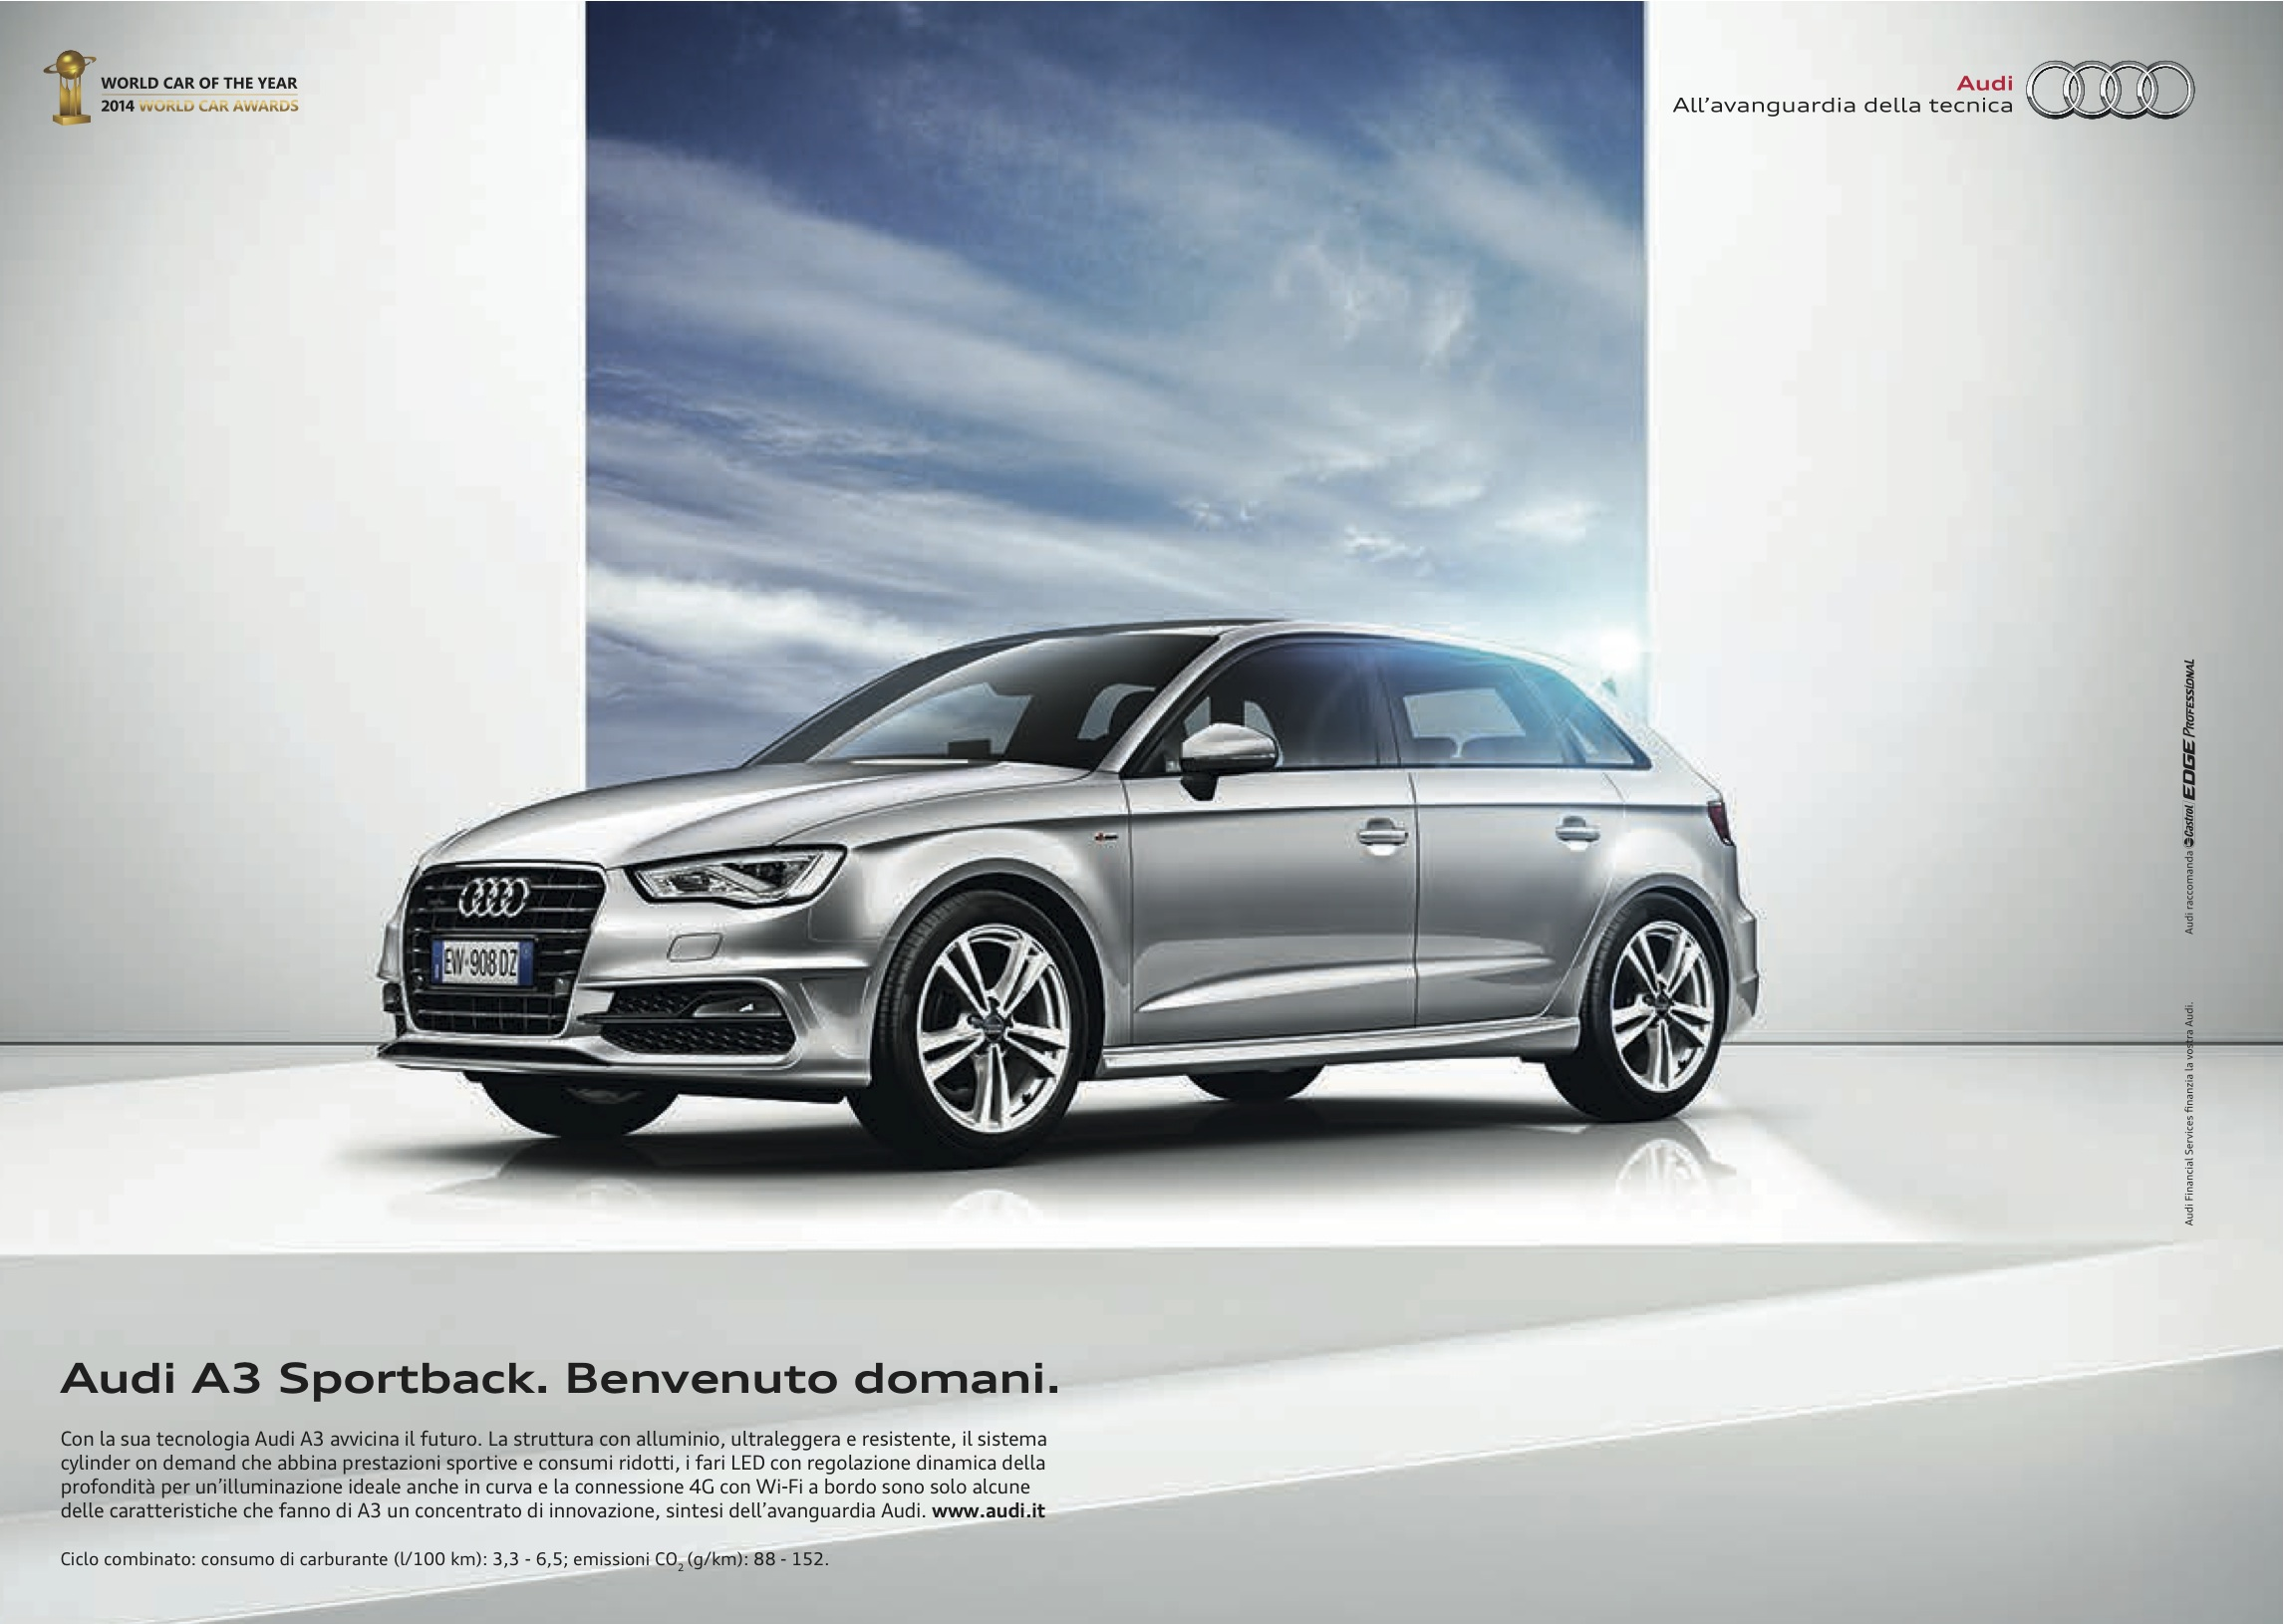 audi a3 sportback una danza tra innovazione e design. Black Bedroom Furniture Sets. Home Design Ideas